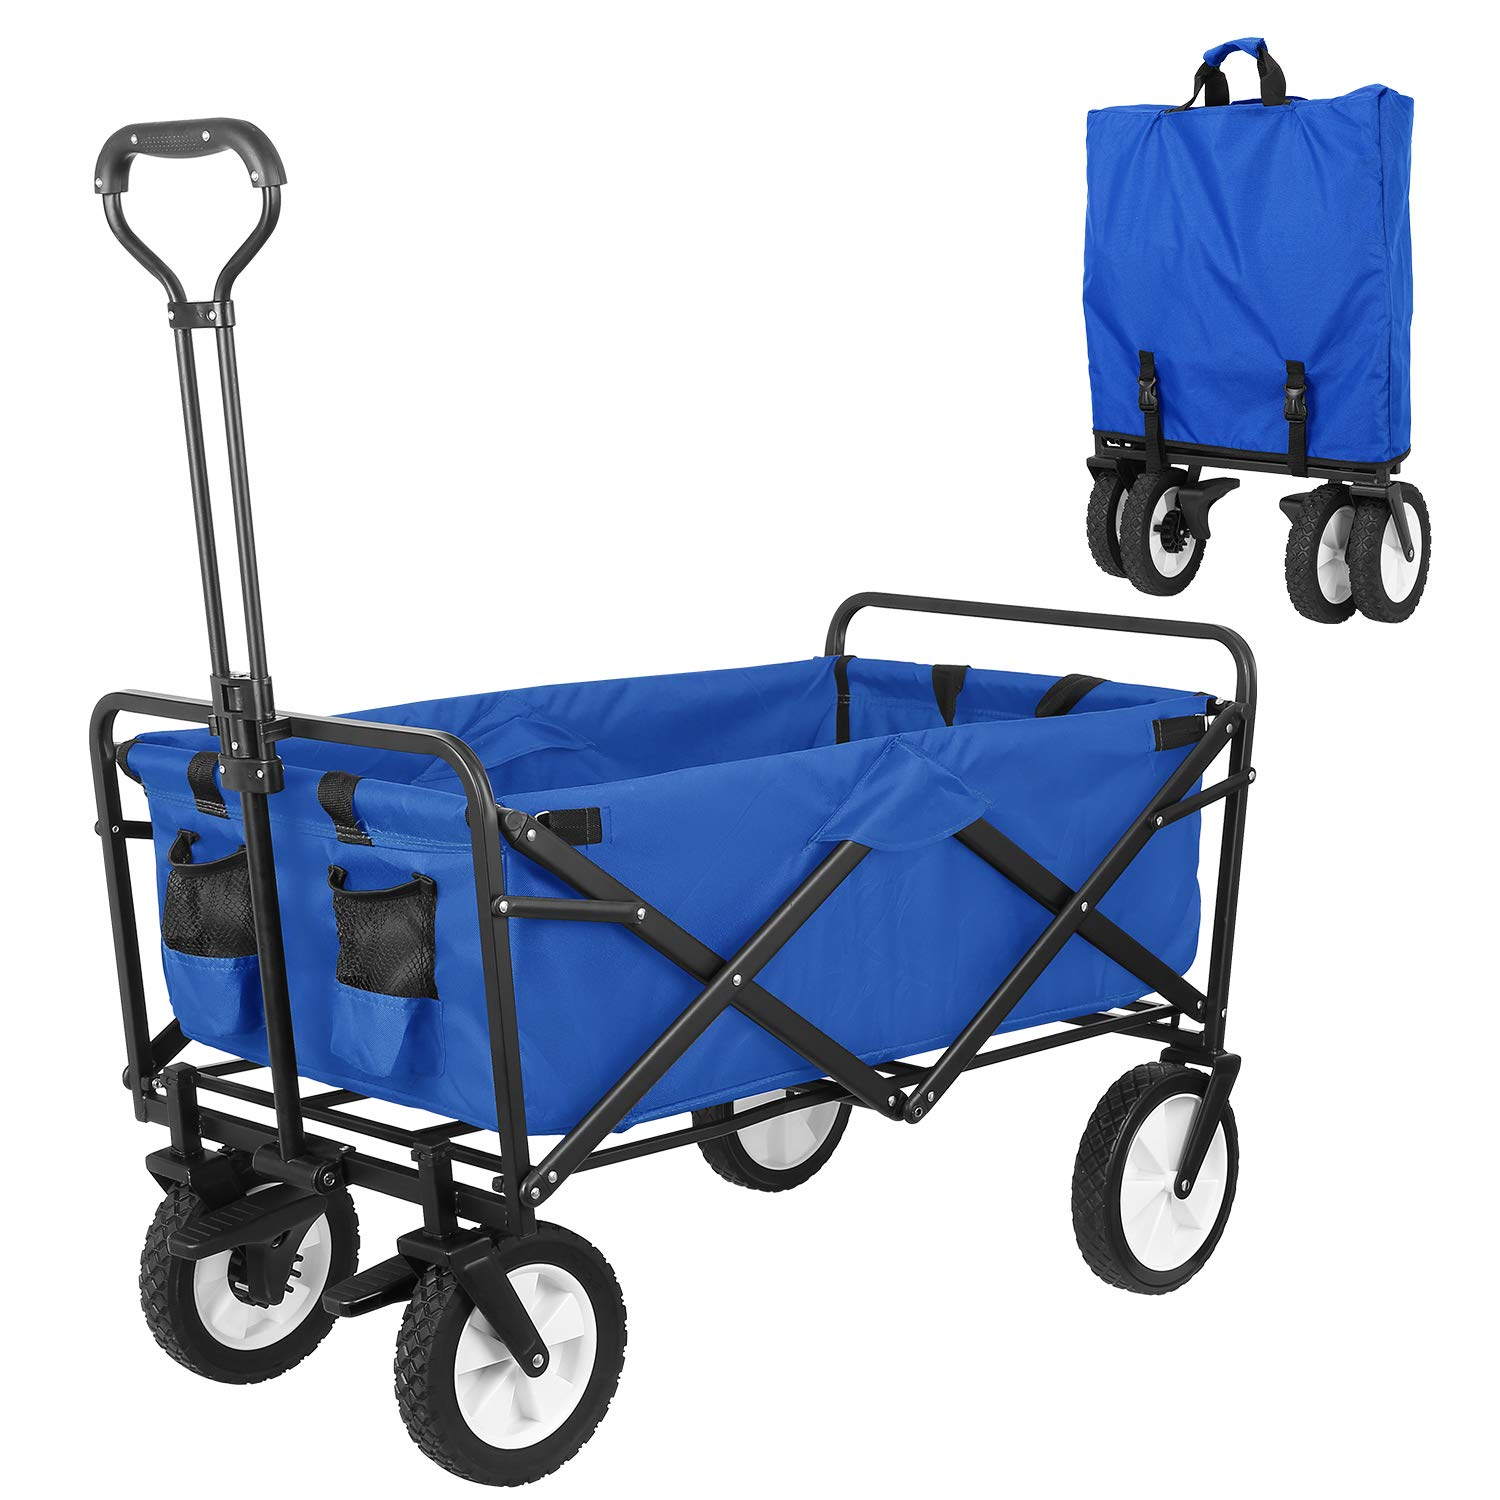 HEMBOR Collapsible Outdoor Utility Wagon, Heavy Duty Folding Garden Portable Hand Cart, with 8 Rubber Wheels and Brake Wheels, Adjustable Handles and Double Fabric, for Shopping,Picnic,Beach Blue